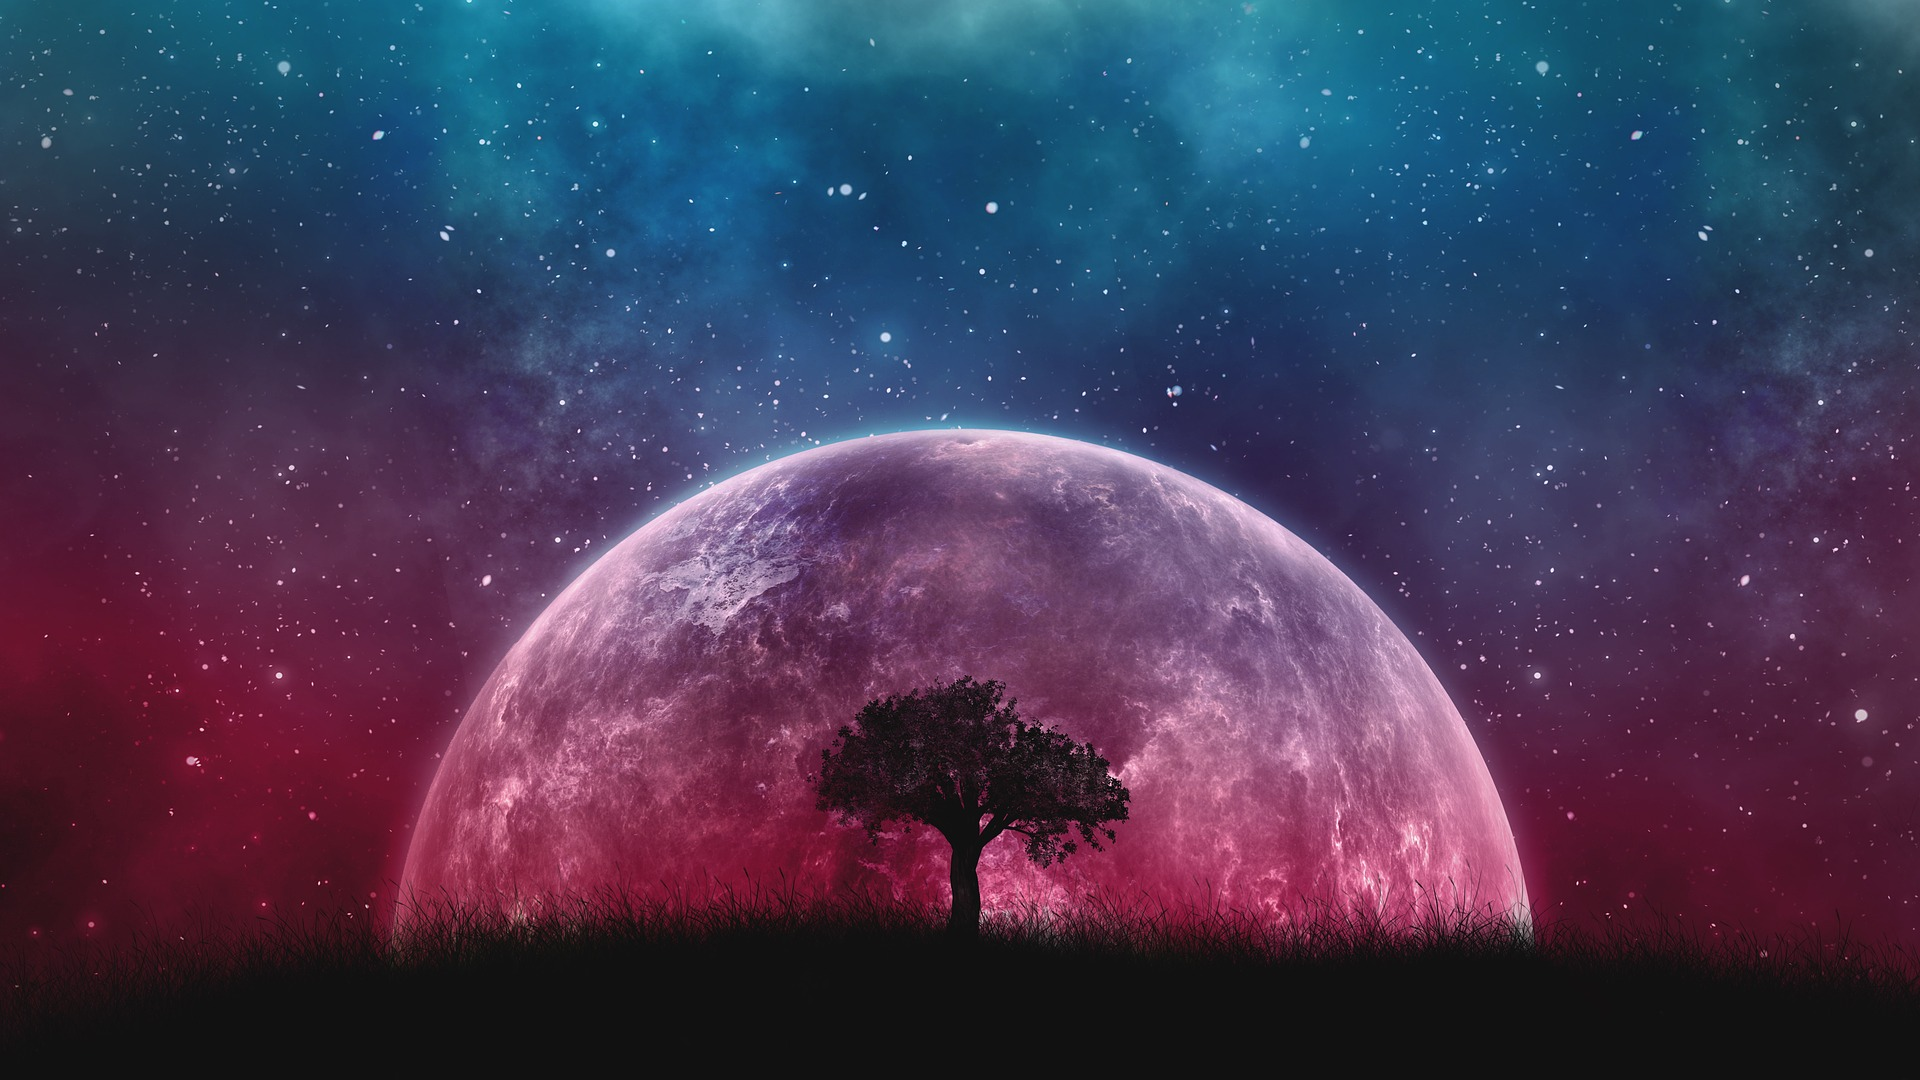 A tree, the moon, the universe